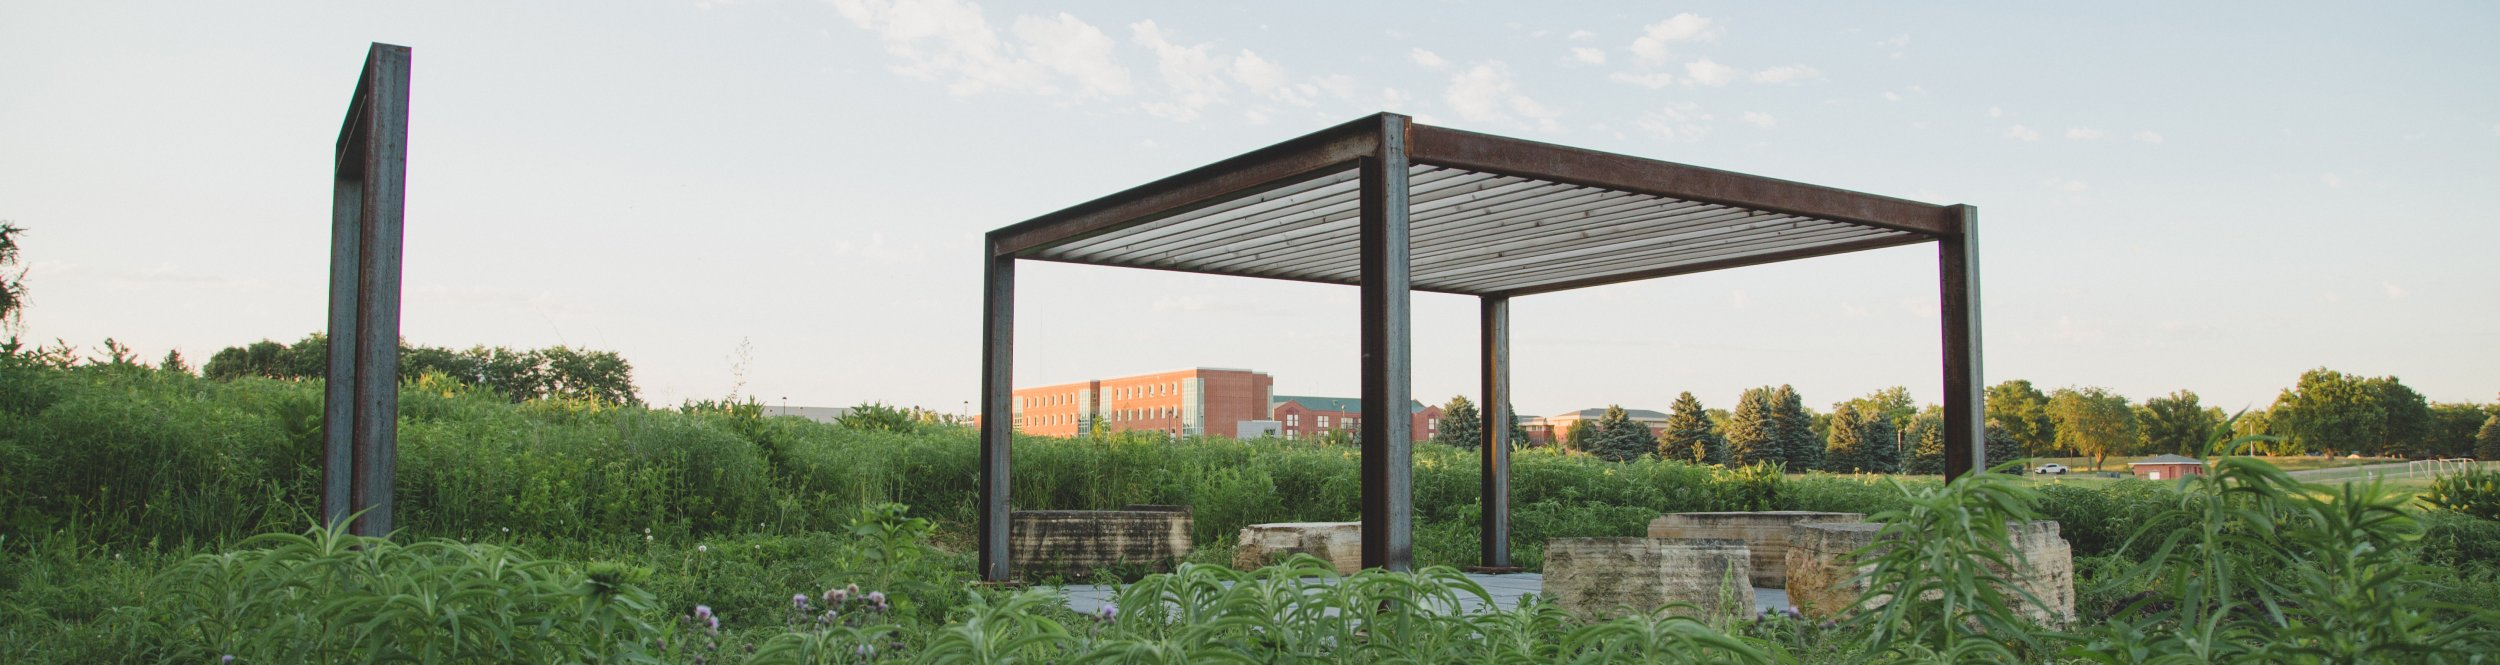 A prairie with metal structures in it.